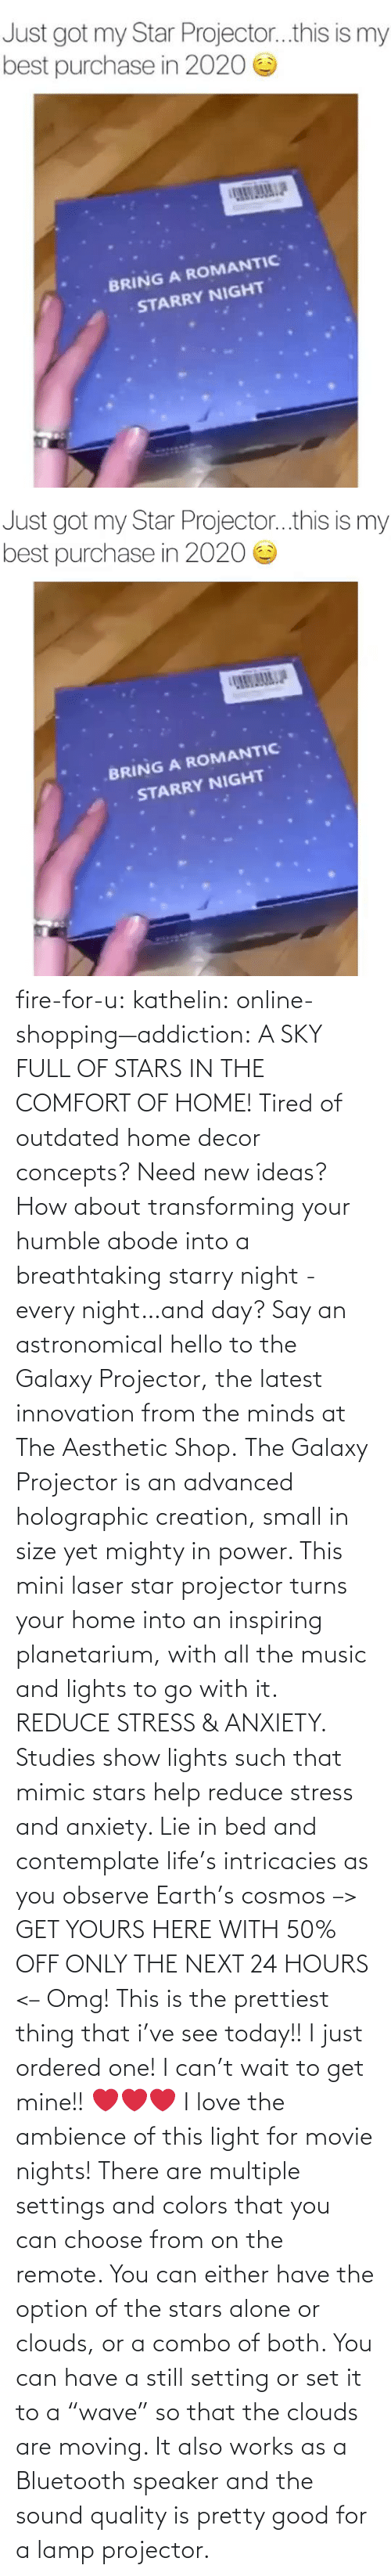 "hours: fire-for-u:  kathelin: online-shopping—addiction:  A SKY FULL OF STARS IN THE COMFORT OF HOME! Tired of outdated home decor concepts? Need new ideas? How about transforming your humble abode into a breathtaking starry night - every night…and day? Say an astronomical hello to the Galaxy Projector, the latest innovation from the minds at The Aesthetic Shop. The Galaxy Projector is an advanced holographic creation, small in size yet mighty in power. This mini laser star projector turns your home into an inspiring planetarium, with all the music and lights to go with it. REDUCE STRESS & ANXIETY. Studies show lights such that mimic stars help reduce stress and anxiety. Lie in bed and contemplate life's intricacies as you observe Earth's cosmos  –> GET YOURS HERE WITH 50% OFF ONLY THE NEXT 24 HOURS <–   Omg! This is the prettiest thing that i've see today!! I just ordered one! I can't wait to get mine!! ❤️️❤️️❤️️  I love the ambience of this light for movie nights! There are multiple settings and colors that you can choose from on the remote. You can either have the option of the stars alone or clouds, or a combo of both. You can have a still setting or set it to a ""wave"" so that the clouds are moving. It also works as a Bluetooth speaker and the sound quality is pretty good for a lamp projector."